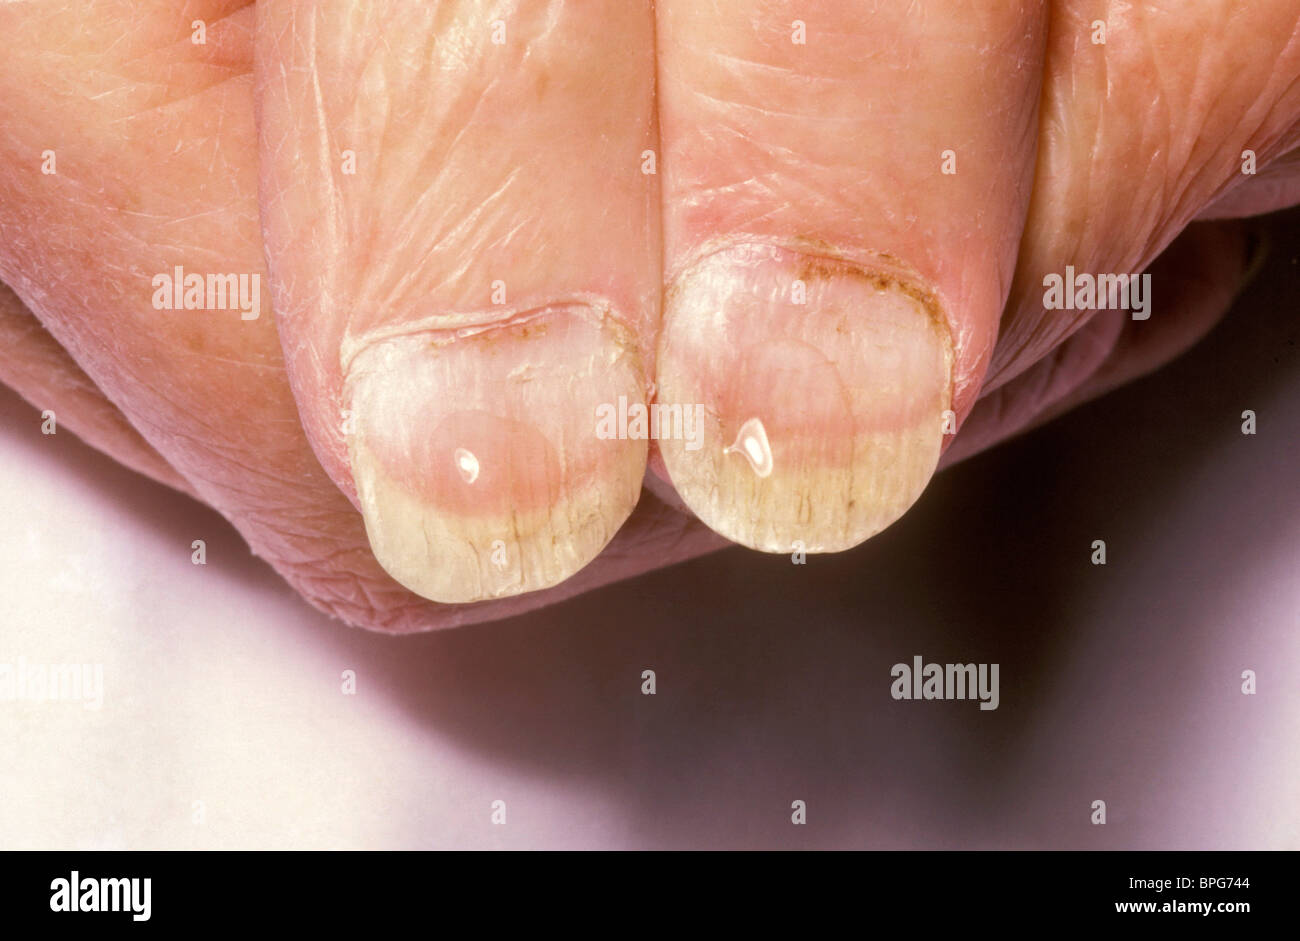 Koilonychia both thumbs Stock Photo: 31089636 - Alamy